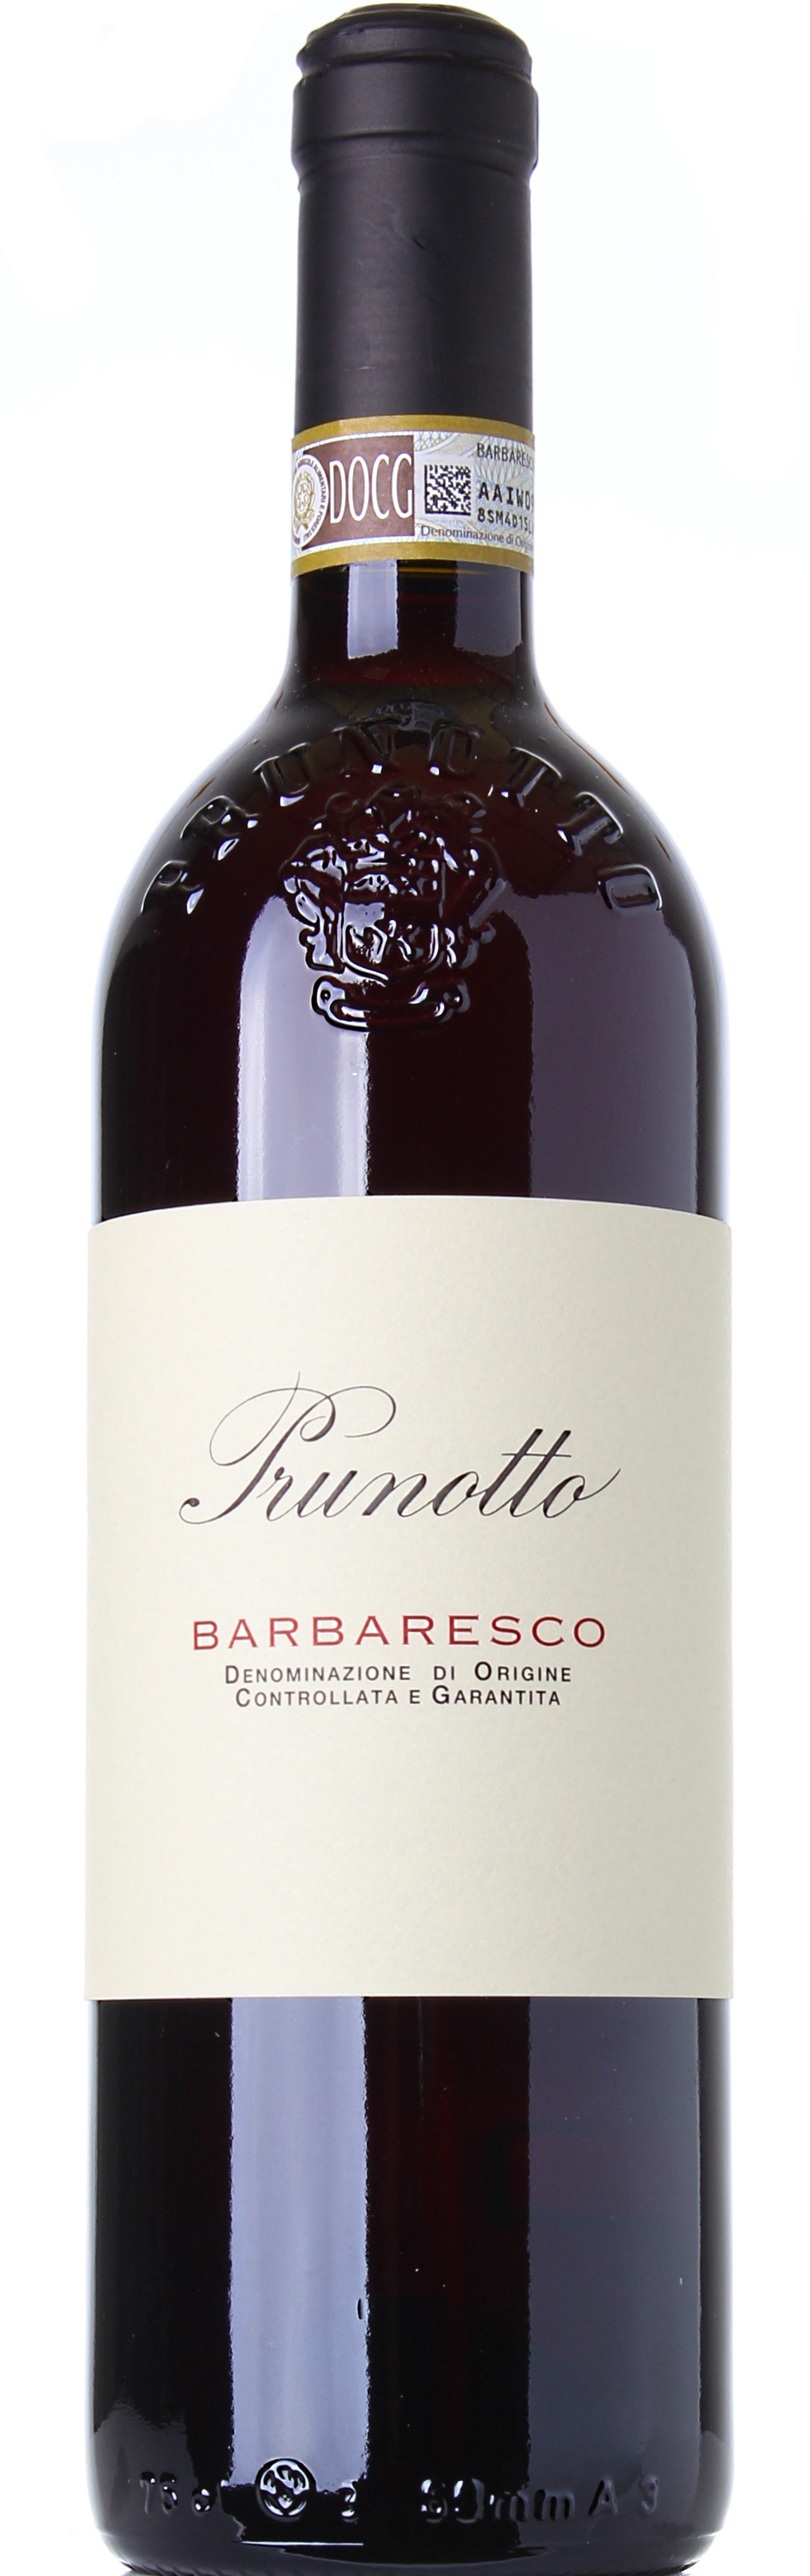 PRUNOTTO BARBARESCO 2013